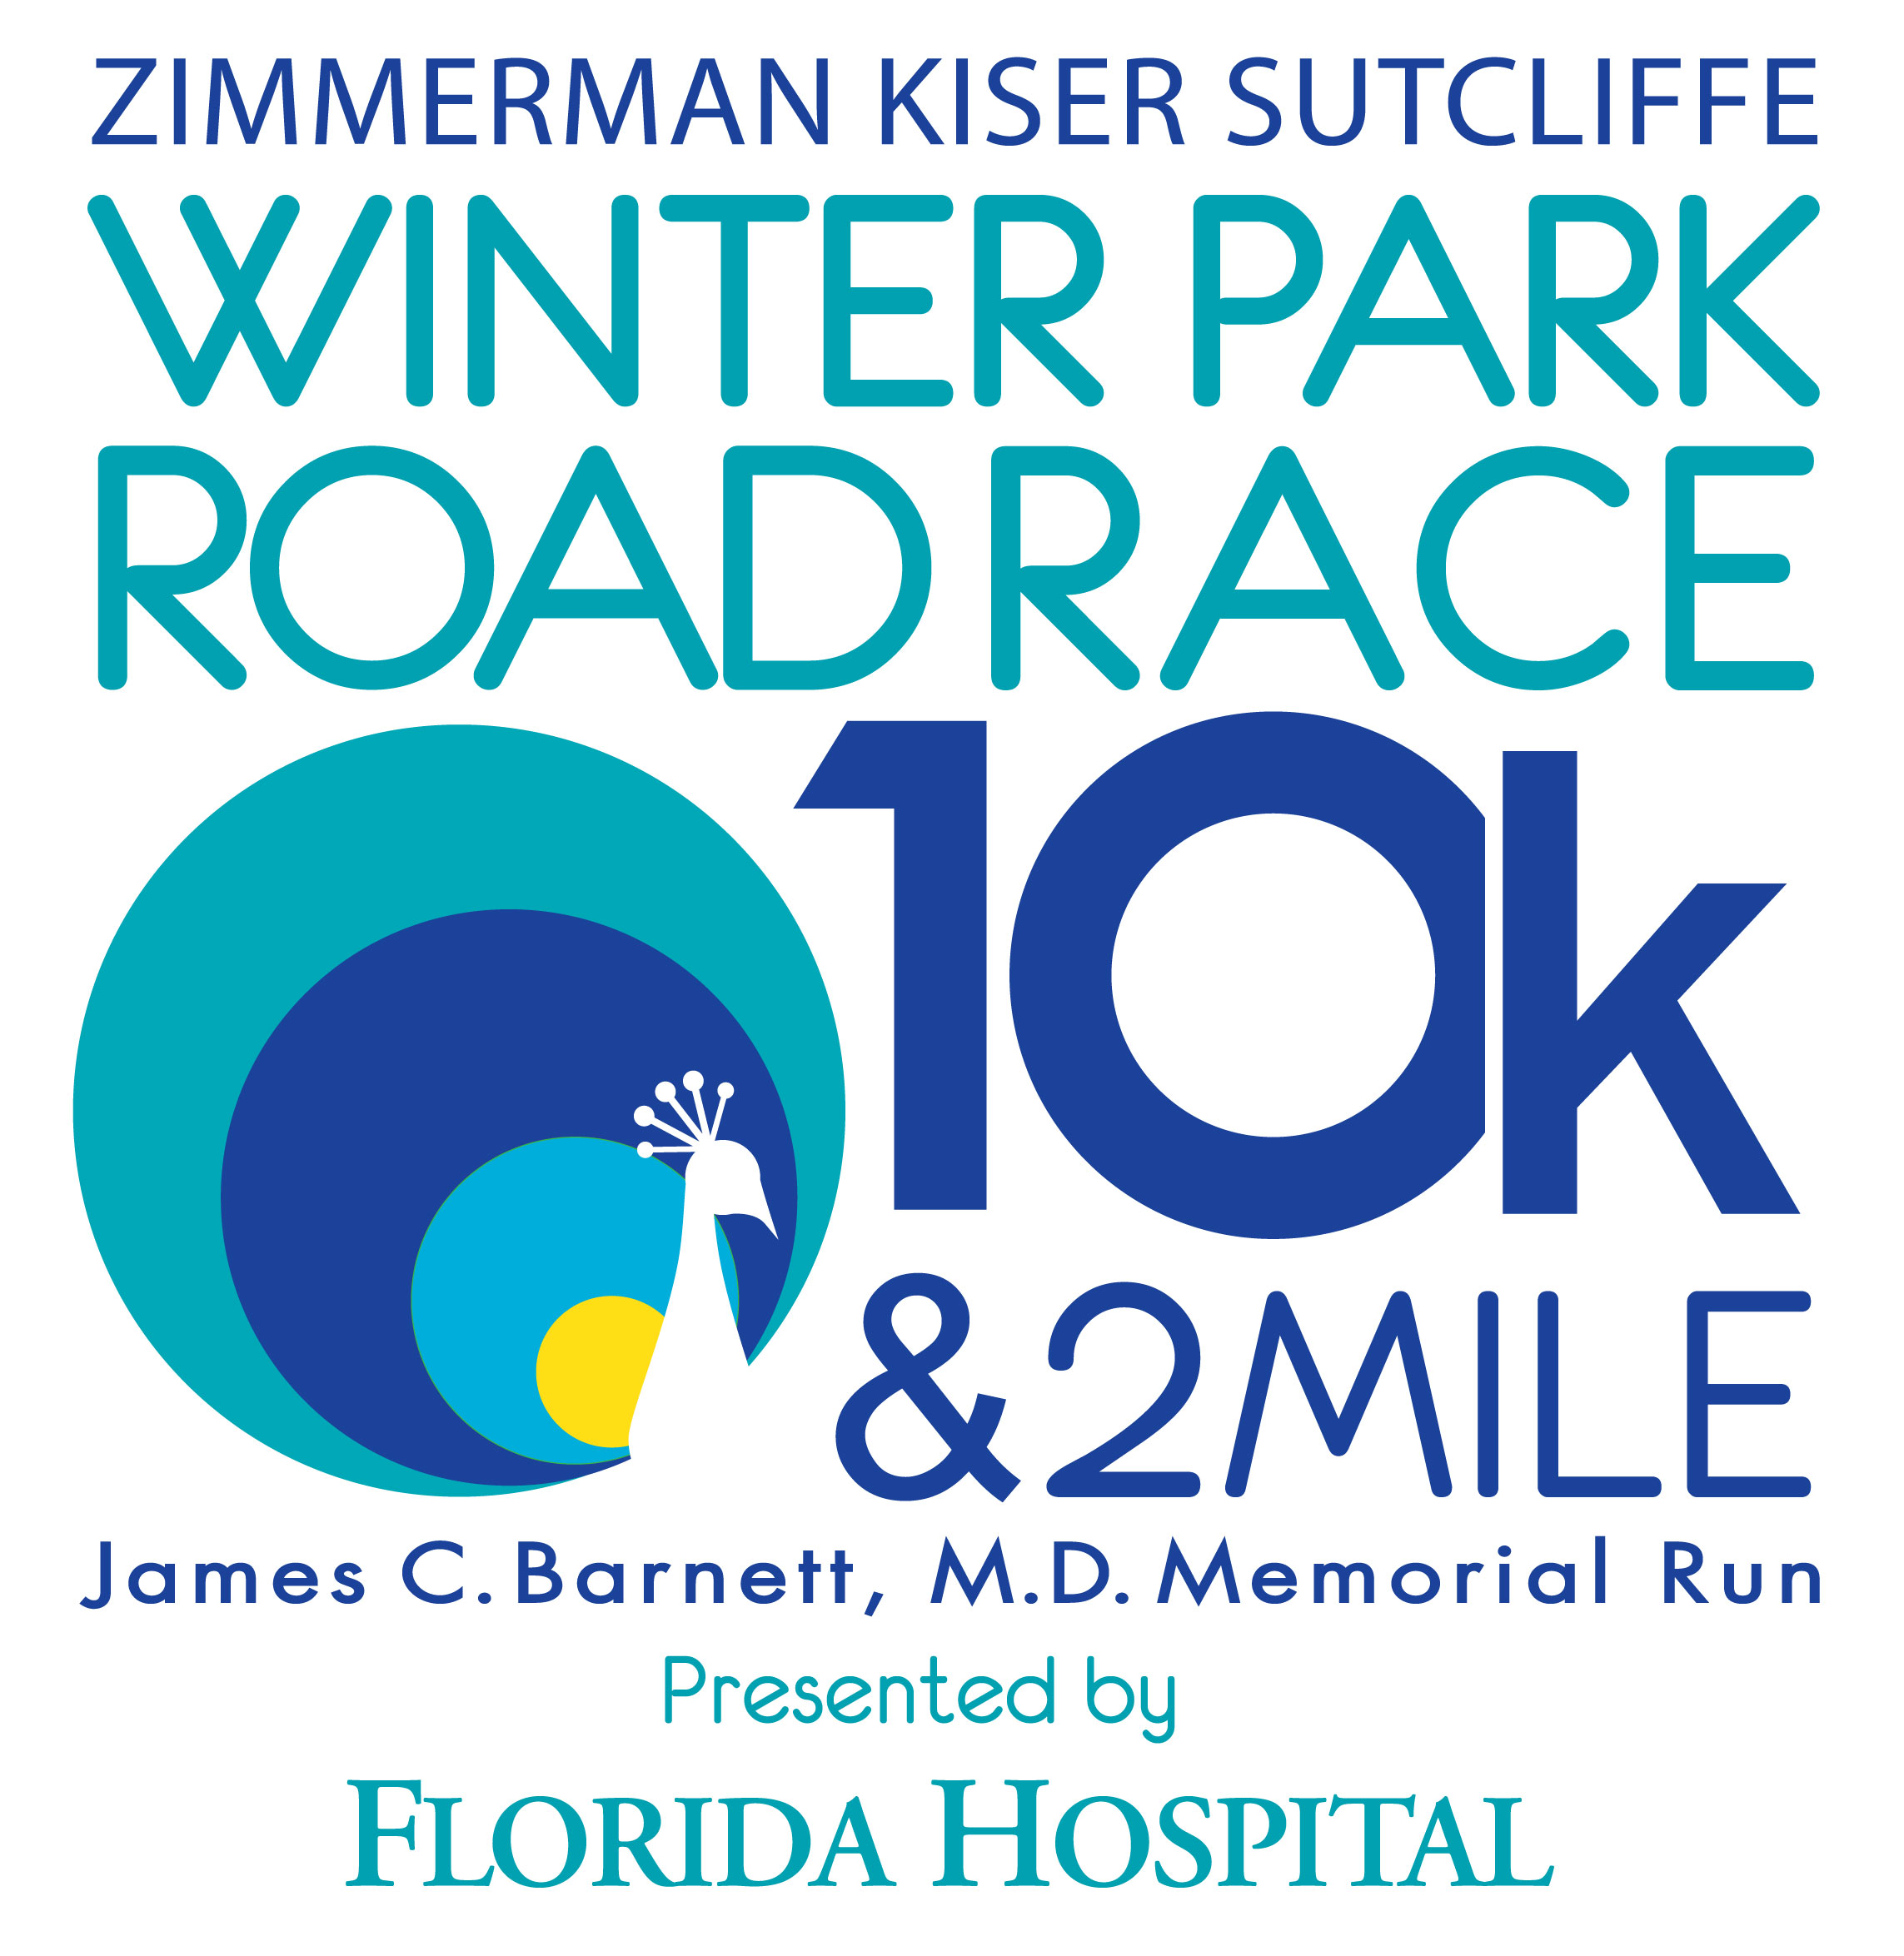 ZKS Winter Park Road Race 10k & 2 Mile presented by Florida Hospital